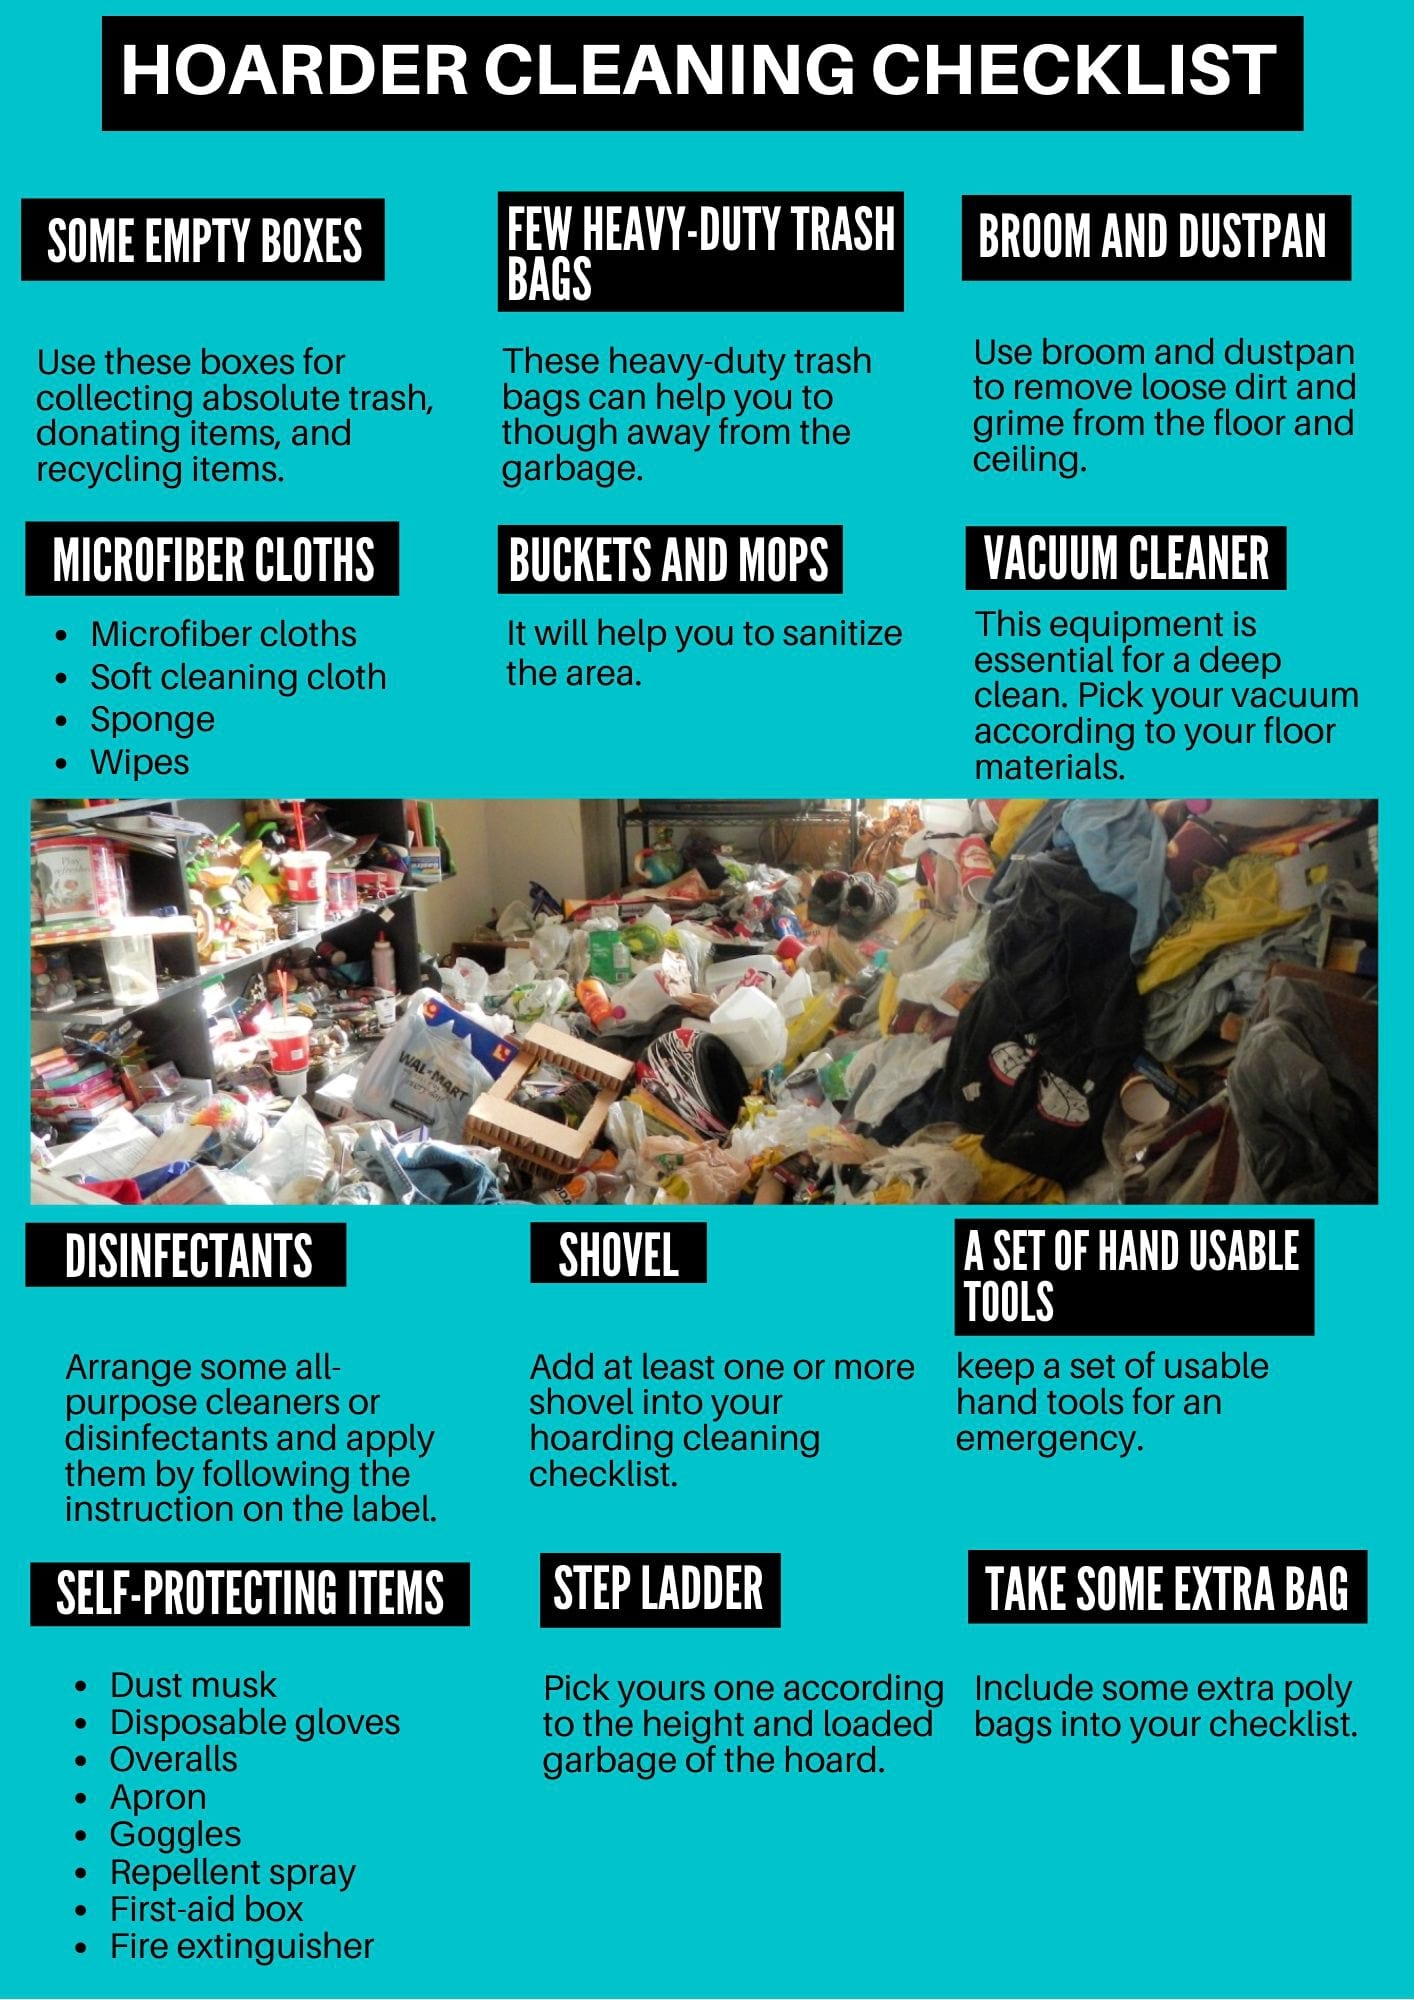 Hoarder cleaning checklist